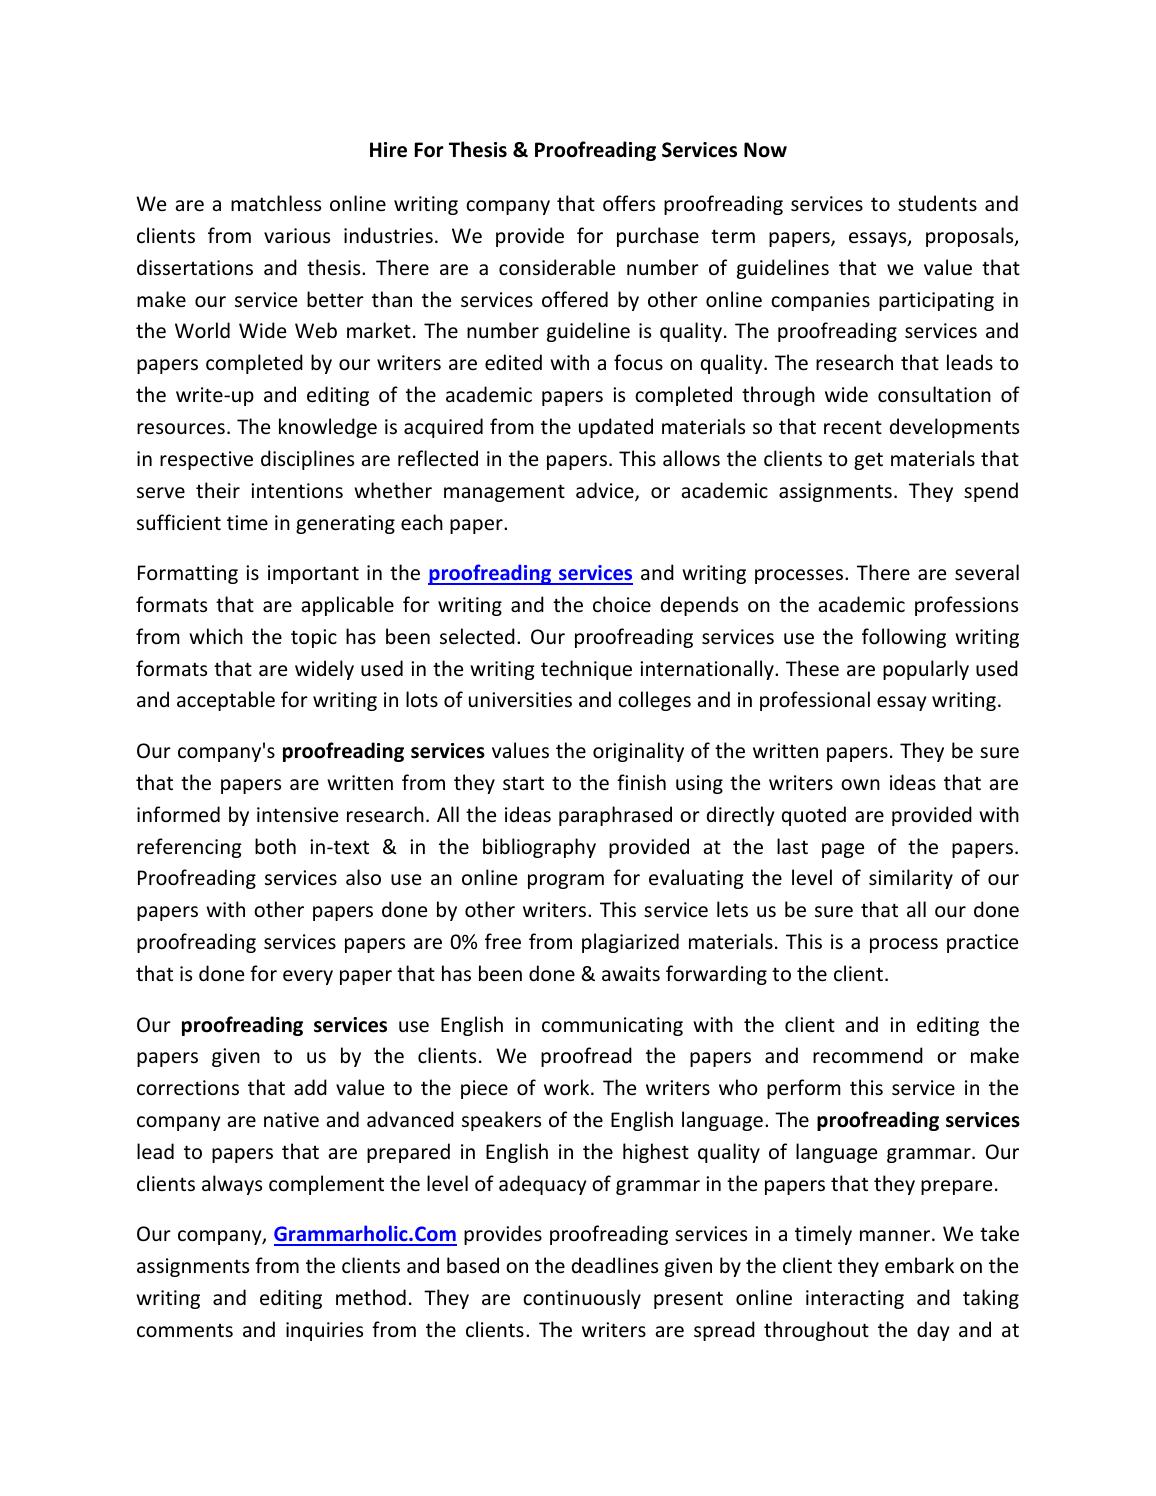 Thesis proofreading service